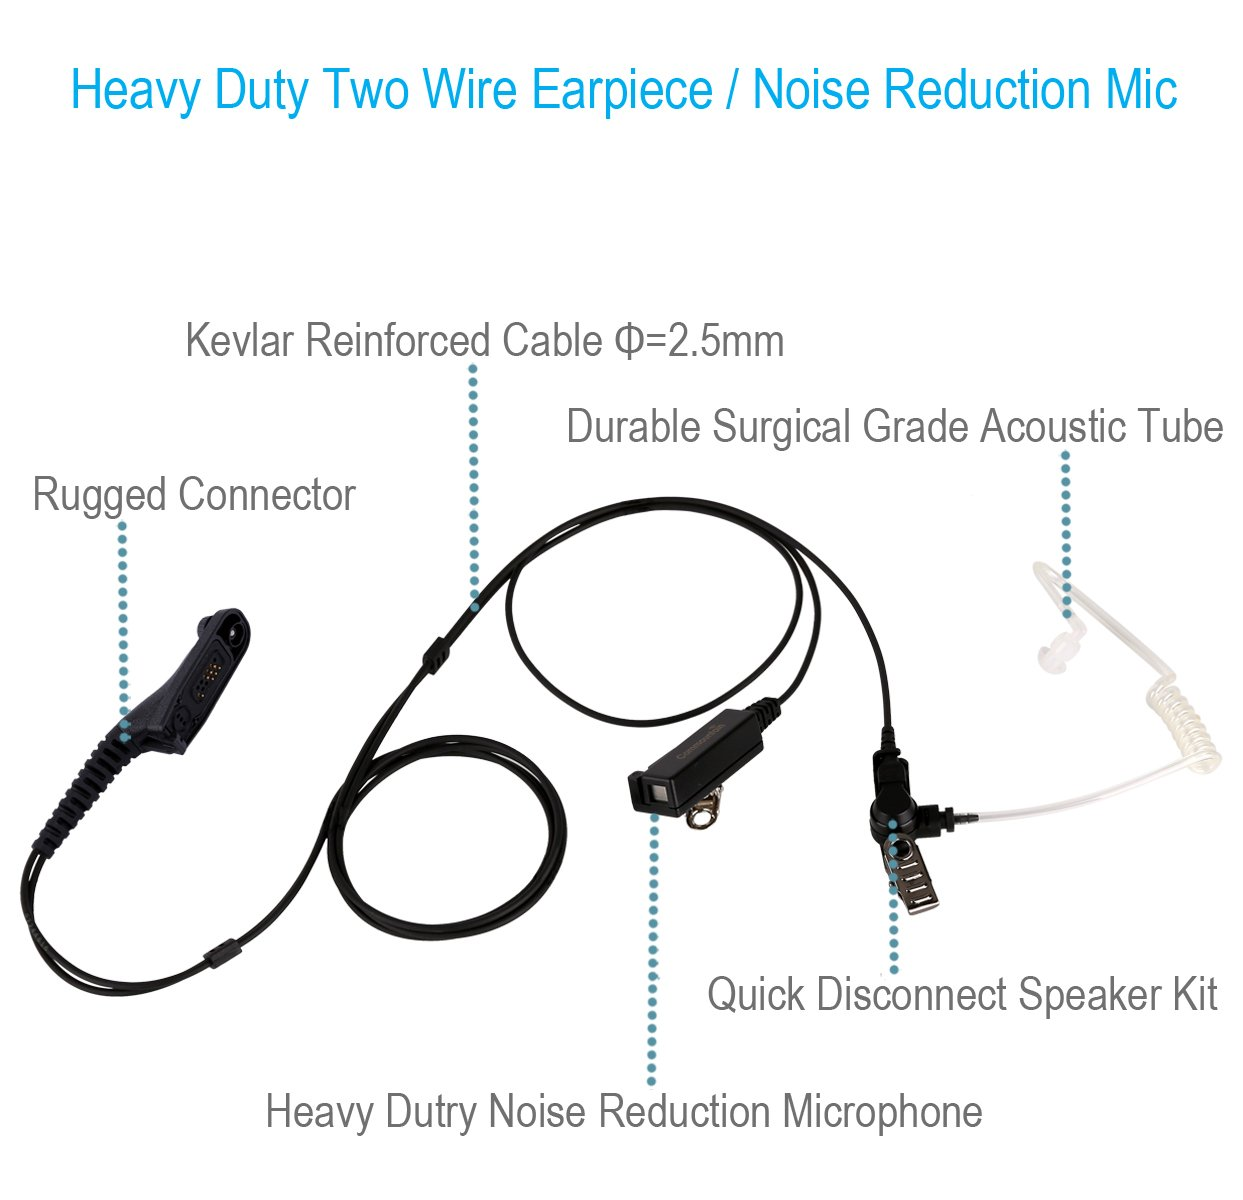 Microphone Wiring Diagrams Xpr 6380 Good 1st Diagram Mic Cord Amazon Com Two Wire Earpiece With Reinforced Cable For Motorola Rh 55s Jack